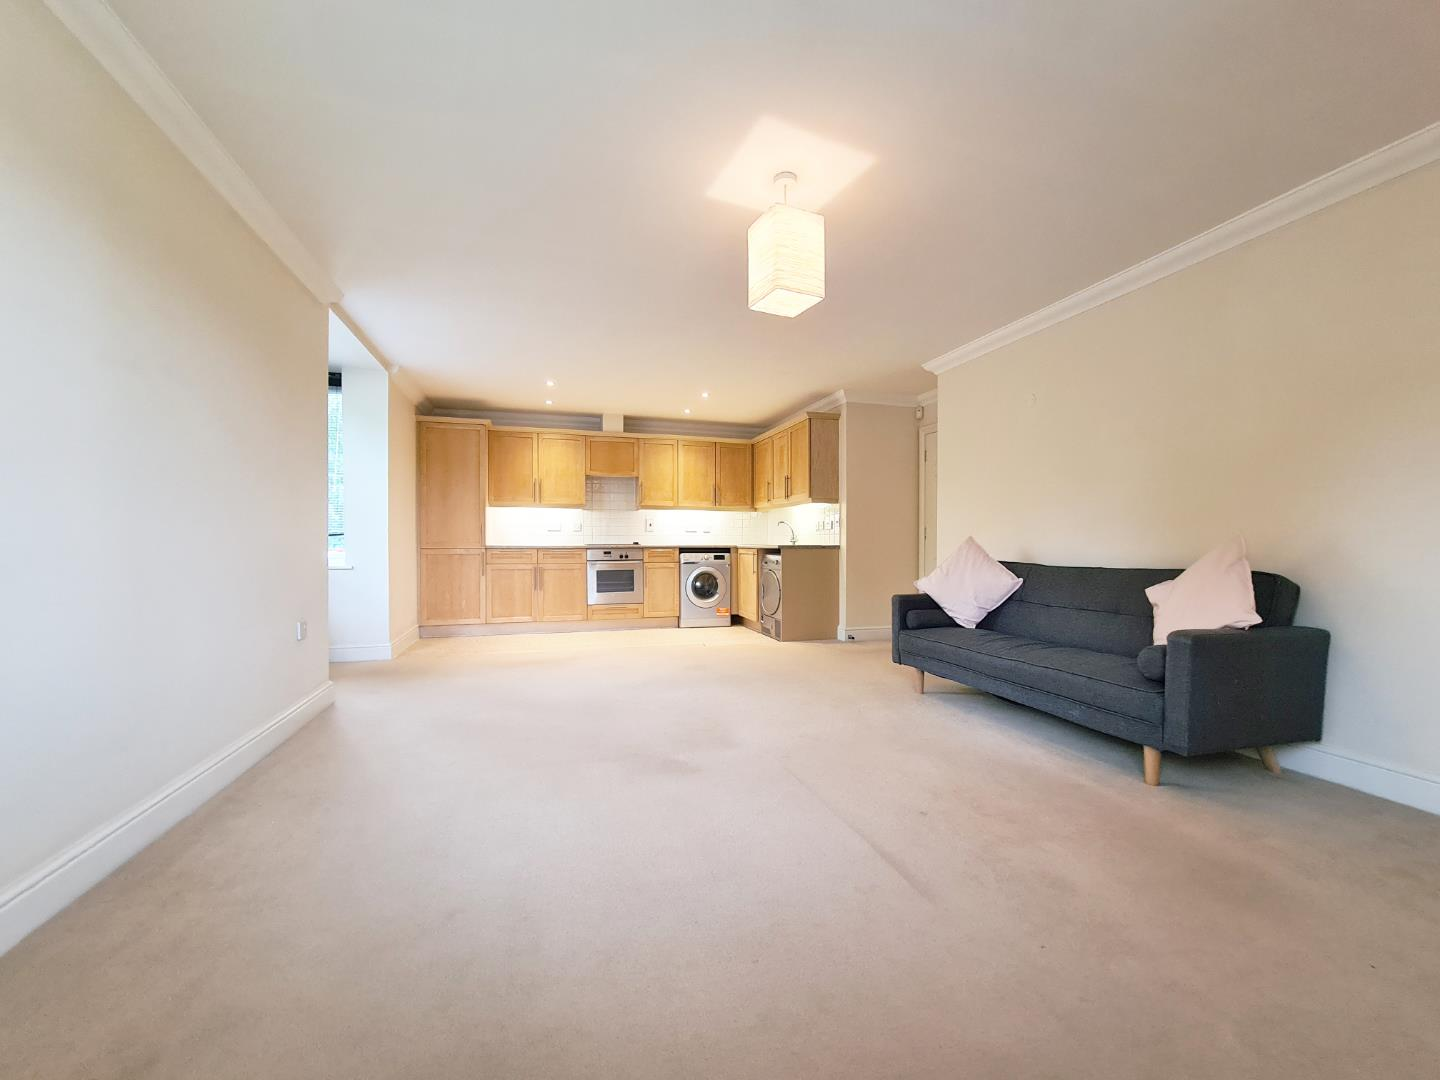 2 bed flat to rent 1